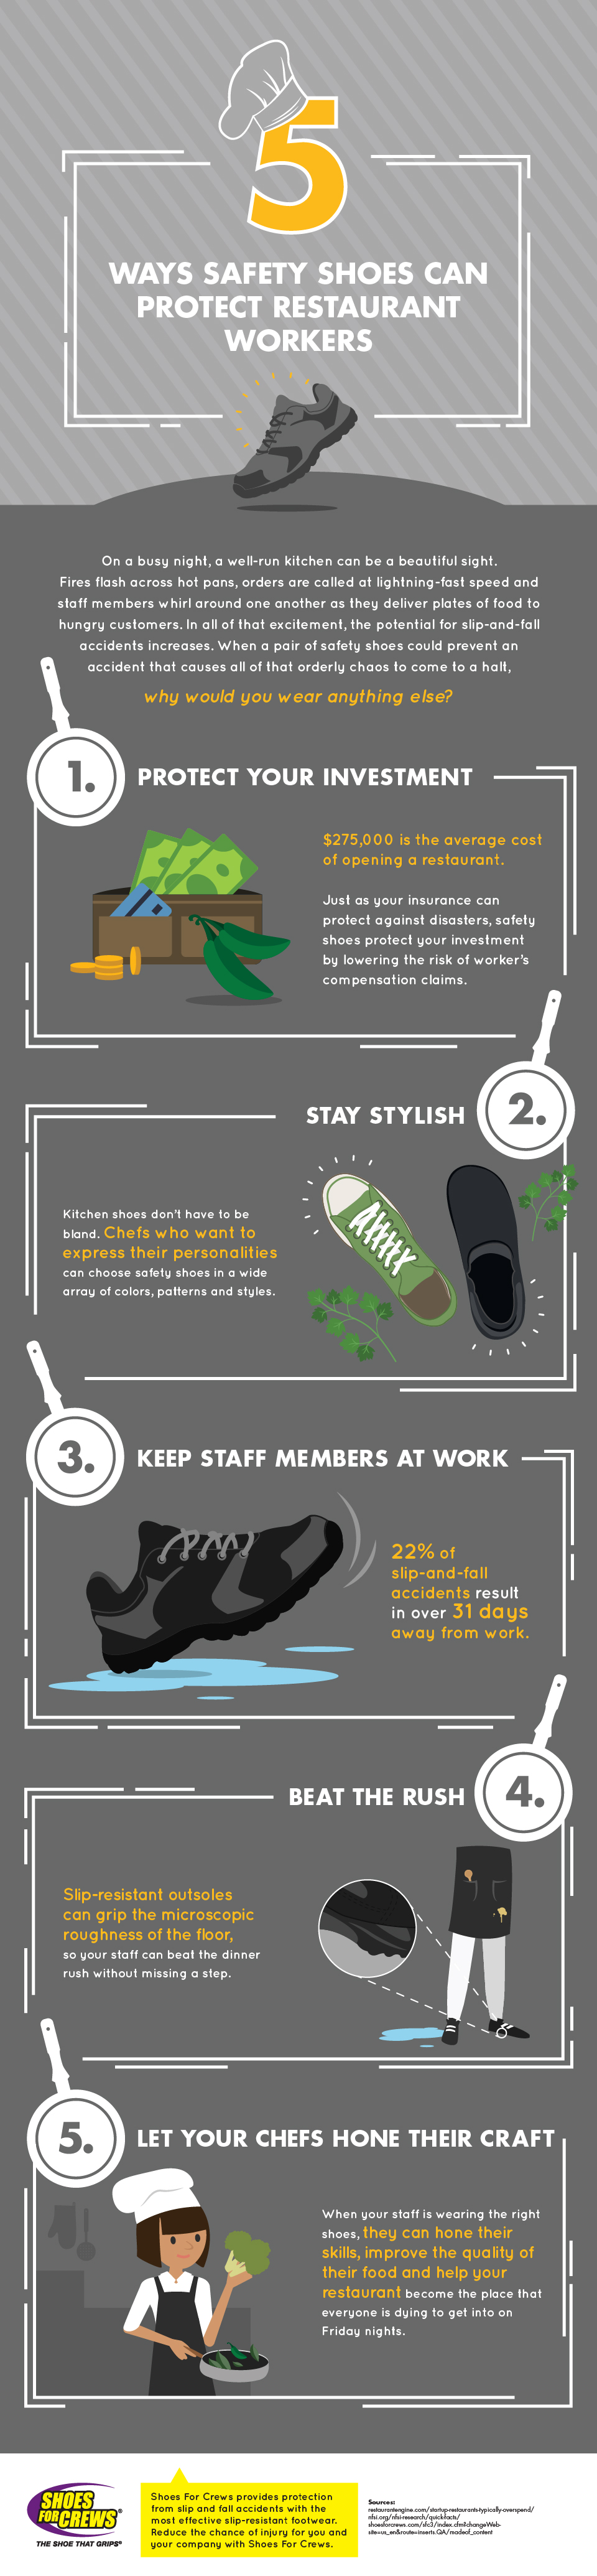 5 Ways Safety Shoes Can Protect Restaurant Workers [Infographic]